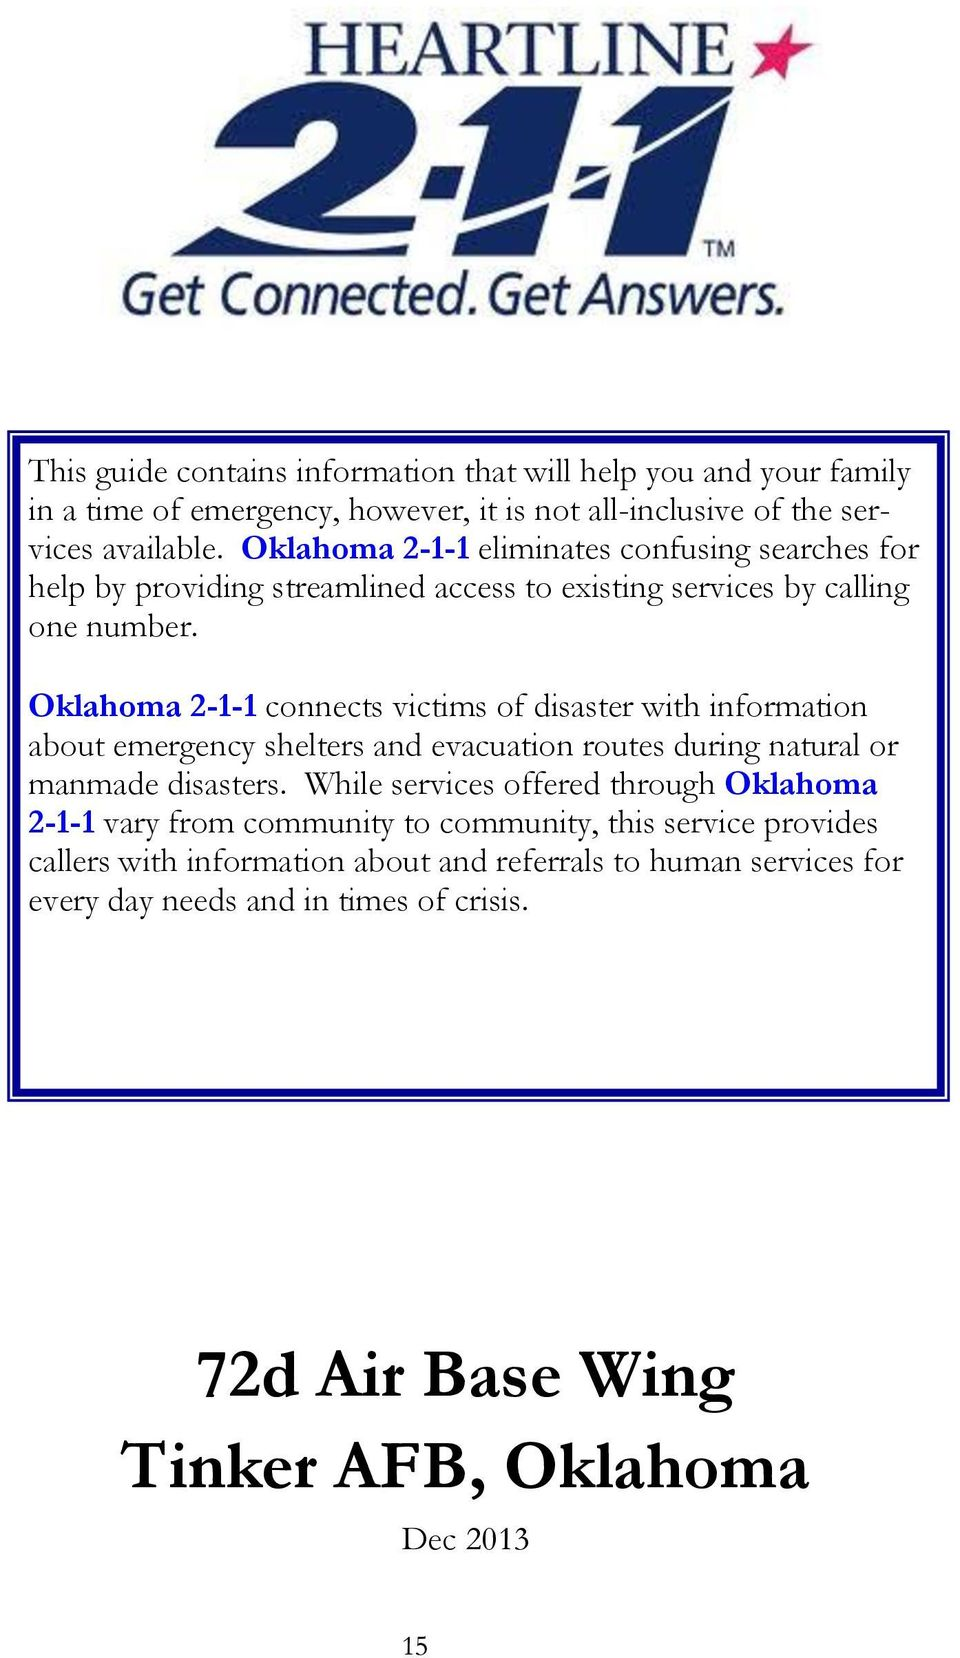 Oklahoma 2-1-1 connects victims of disaster with information about emergency shelters and evacuation routes during natural or manmade disasters.